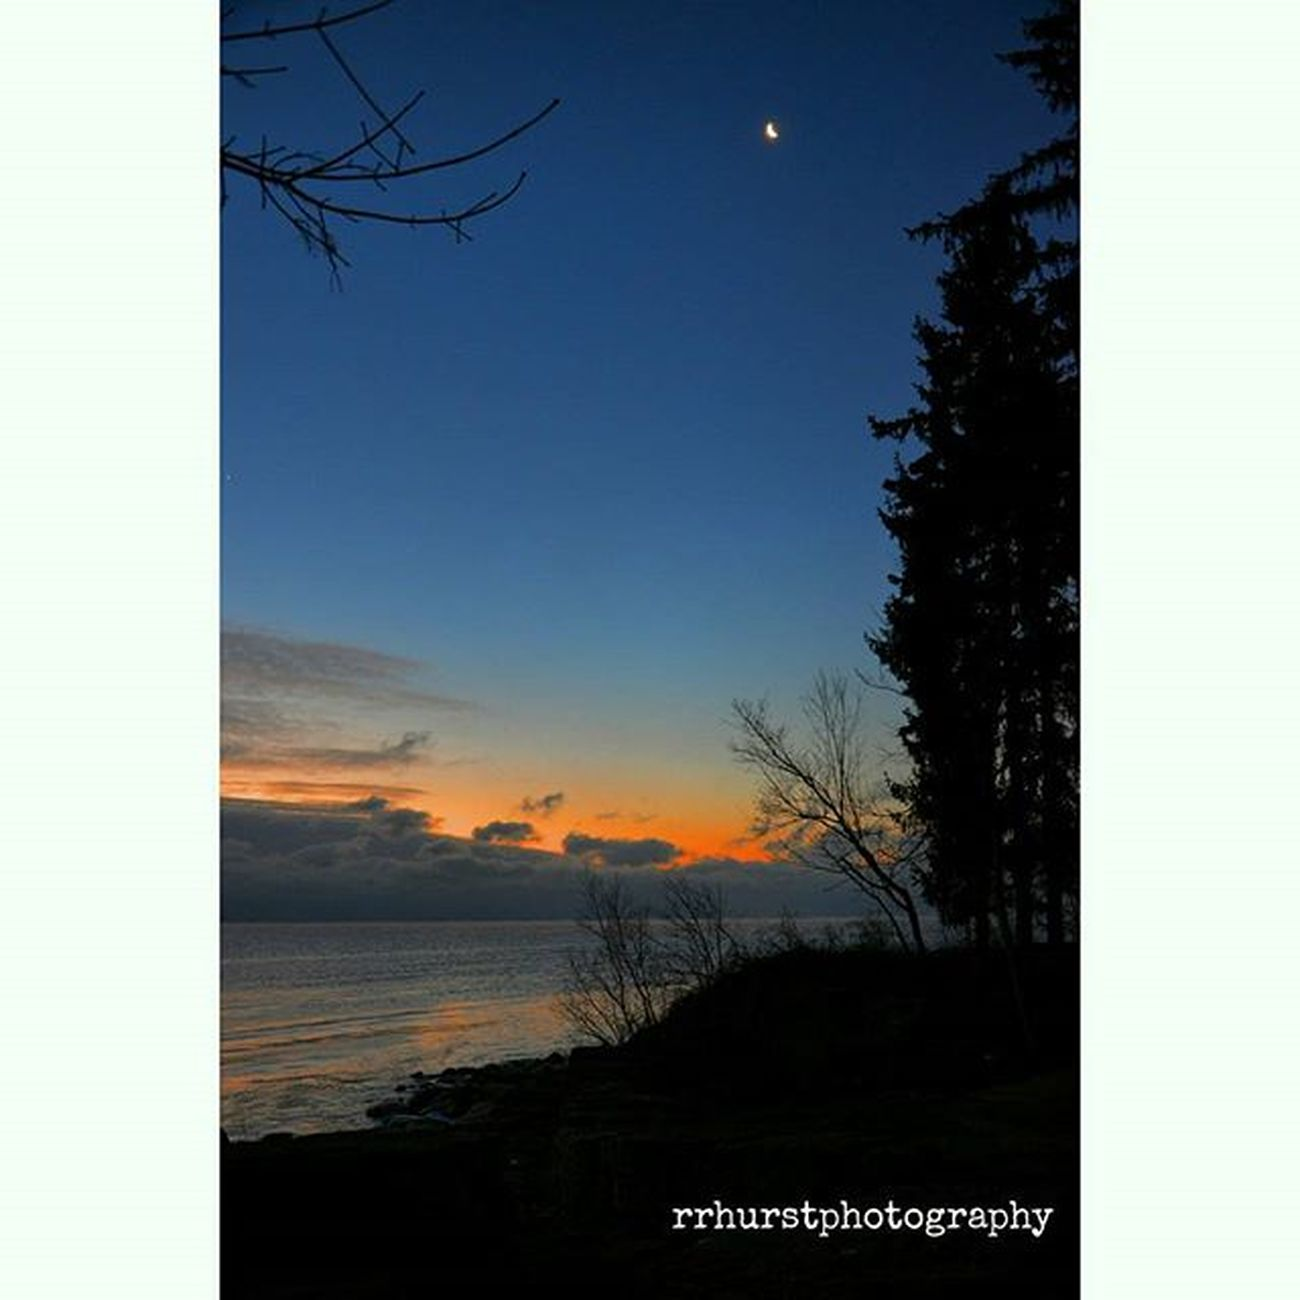 Cold but beautiful evening. @outdoorphotomag @landscapephotomag @photographymagazine Evening Crescentmoon Bluesky Orange Lakeontario  Dusk Igsunsets Water Winter Mississauga Ontario Getoutside OutsideIsFree Southernontariophotographer Stillness Outdoorphotography Landscapephotography Nikonphotographers Prophotographer Nikond7000 Rrhurstphotography Artsburlington Latowphotographersguild